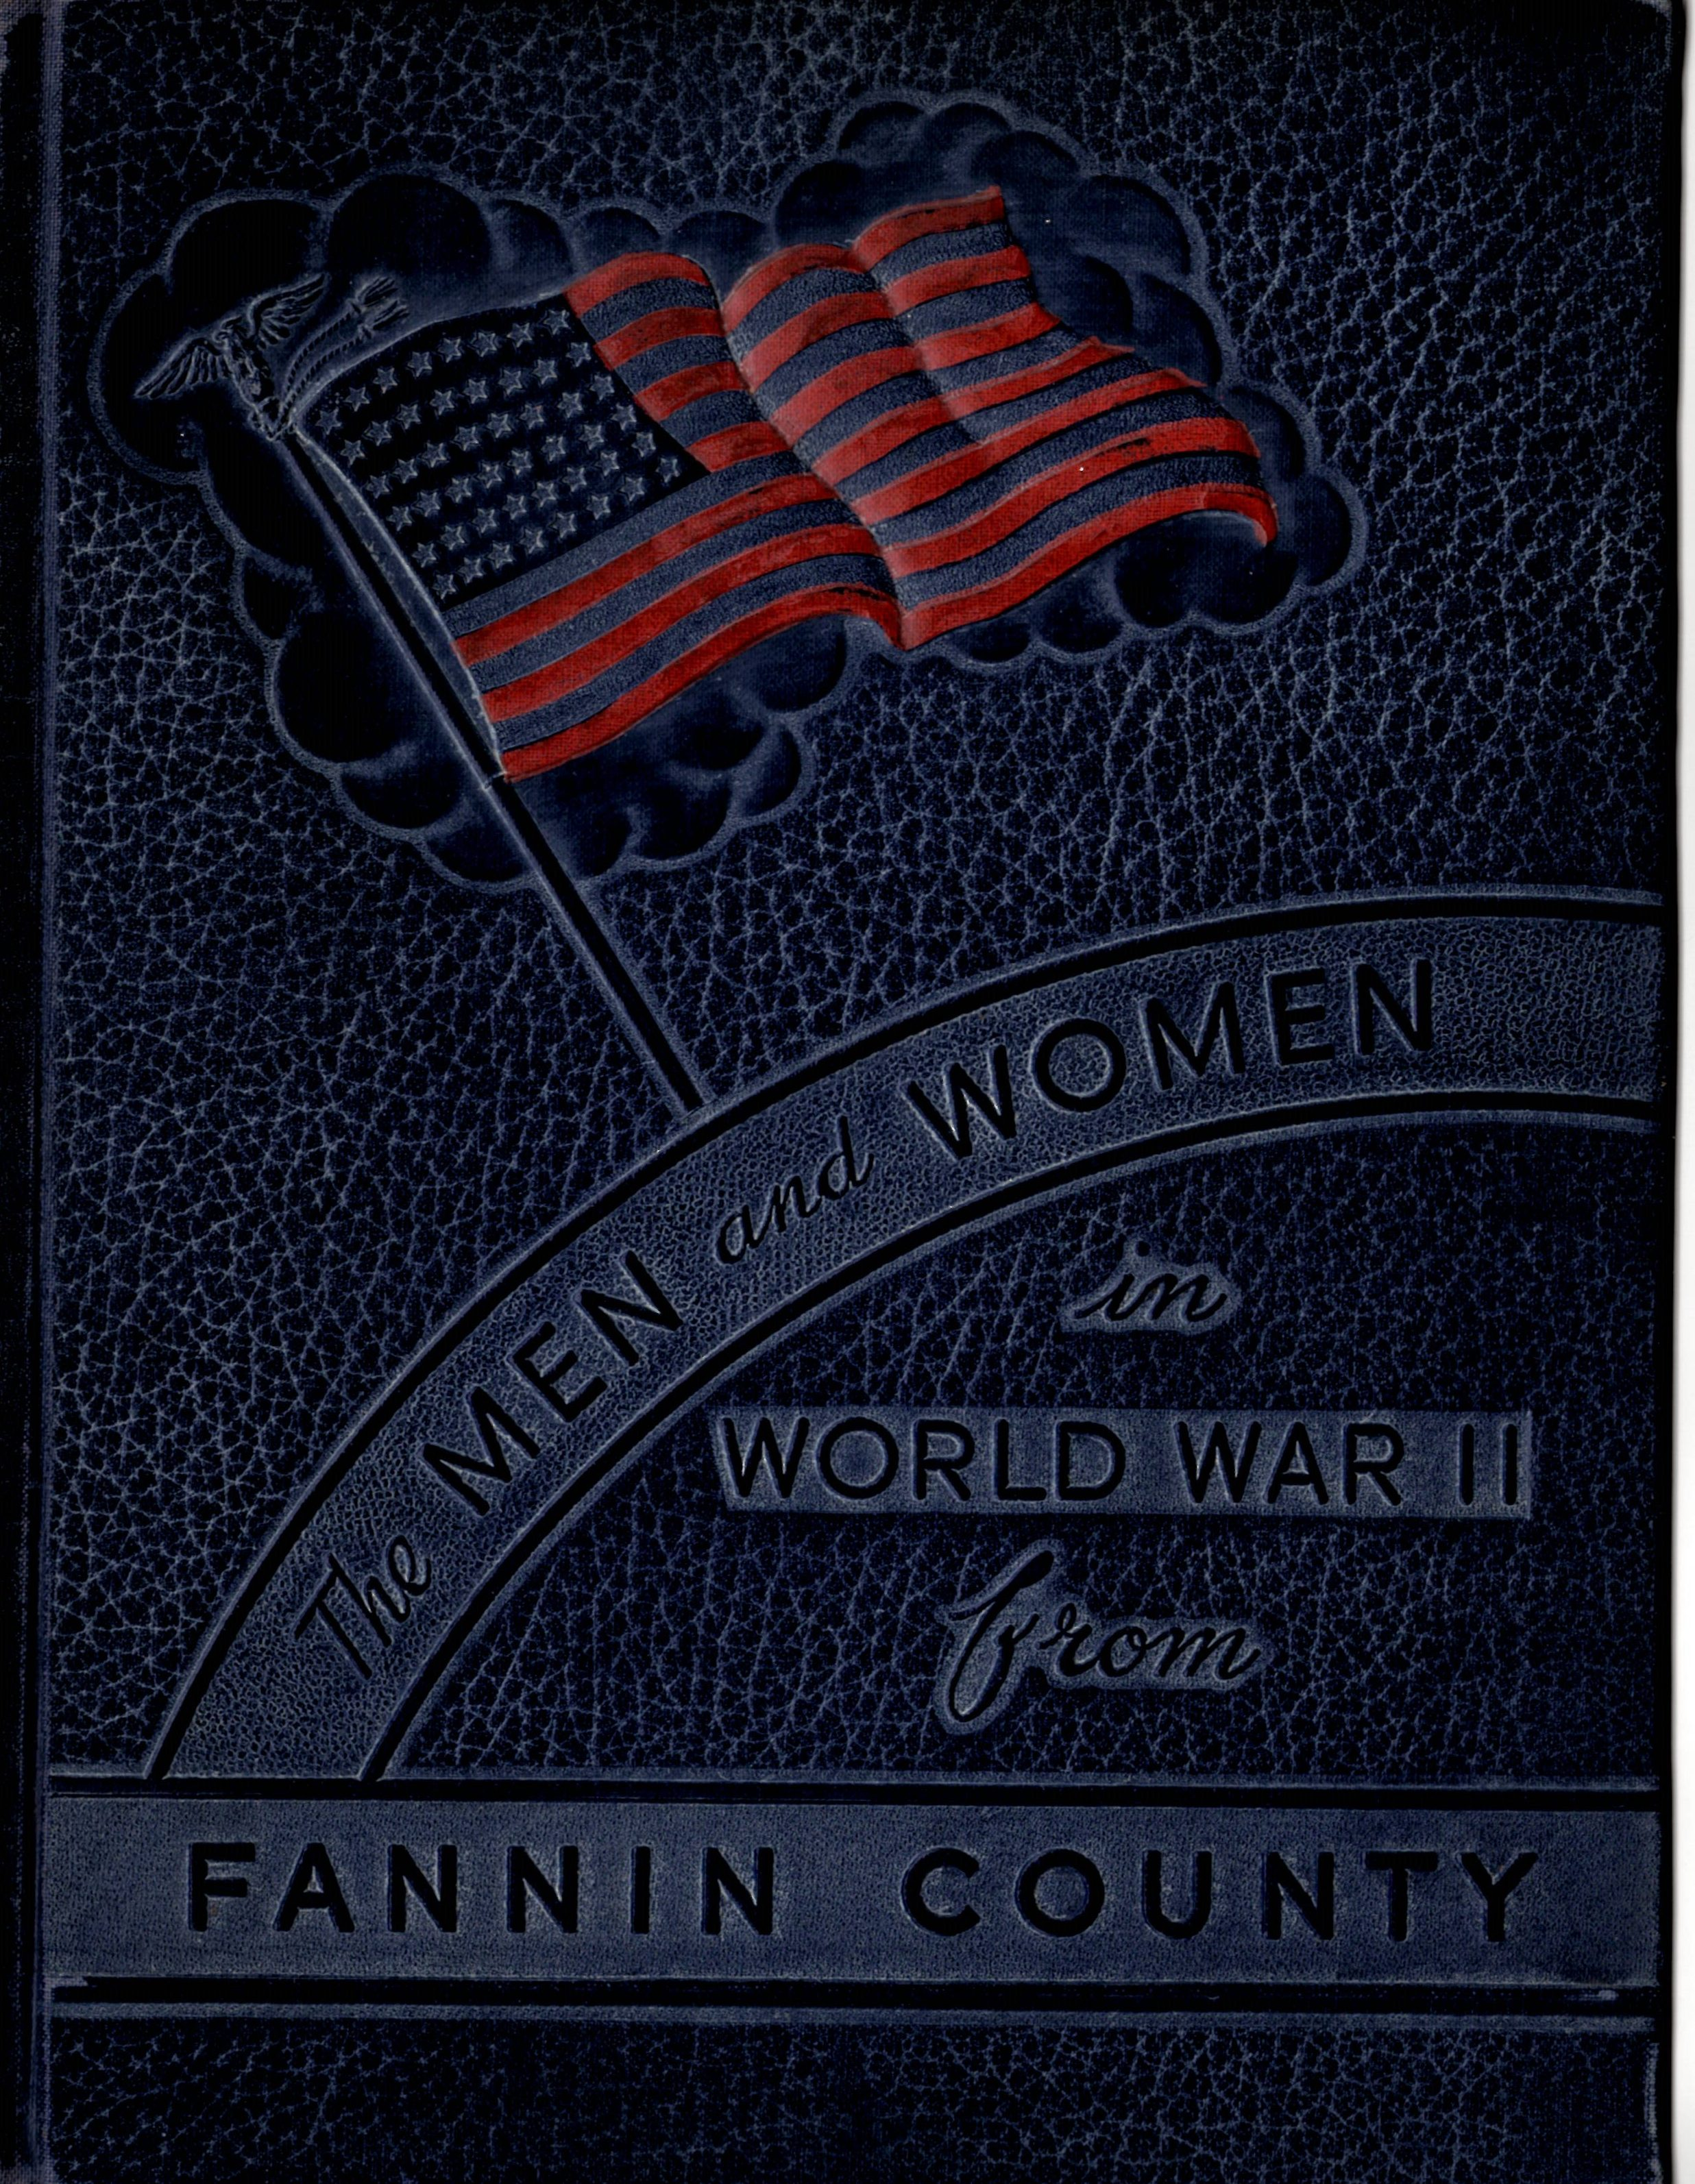 Men and women in the Armed Forces from Fannin County Texas WW2 WWII World WAR II 2 WW